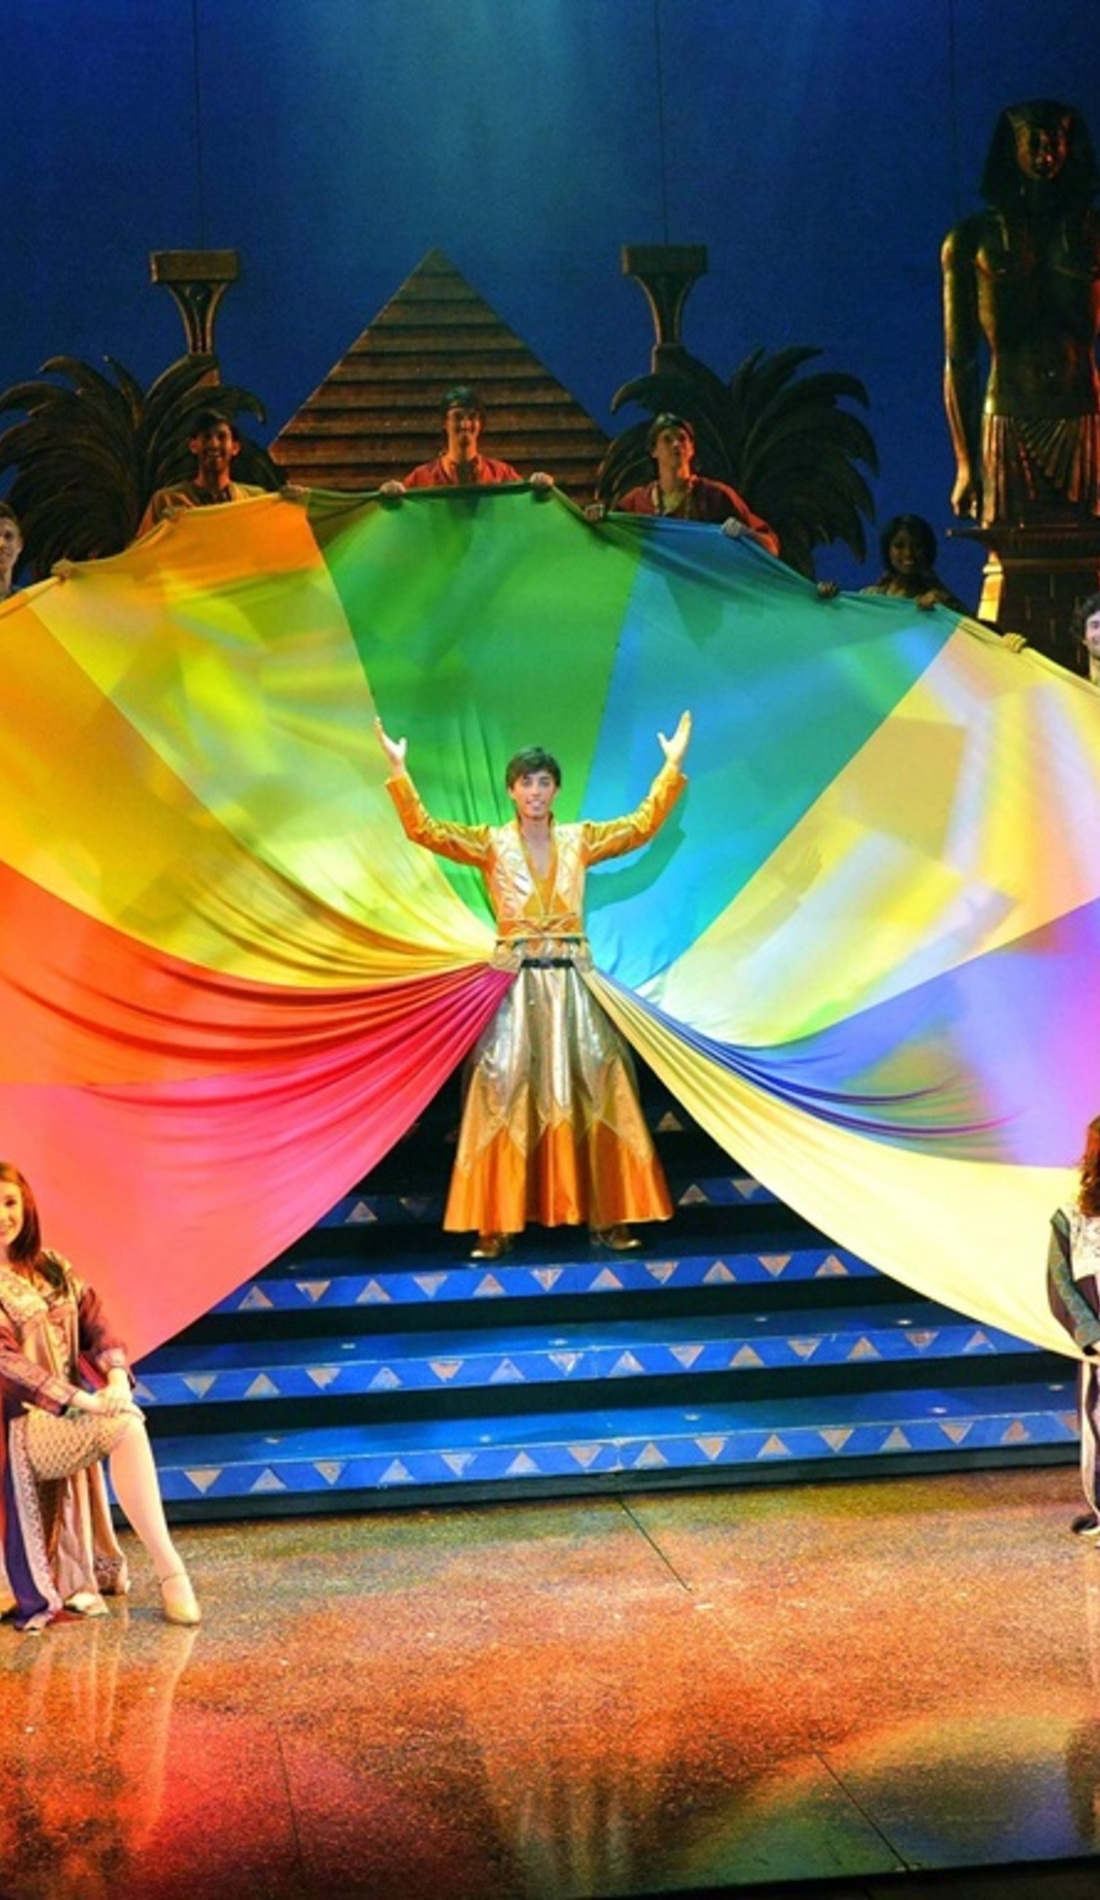 A Joseph And The Amazing Technicolor Dreamcoat live event